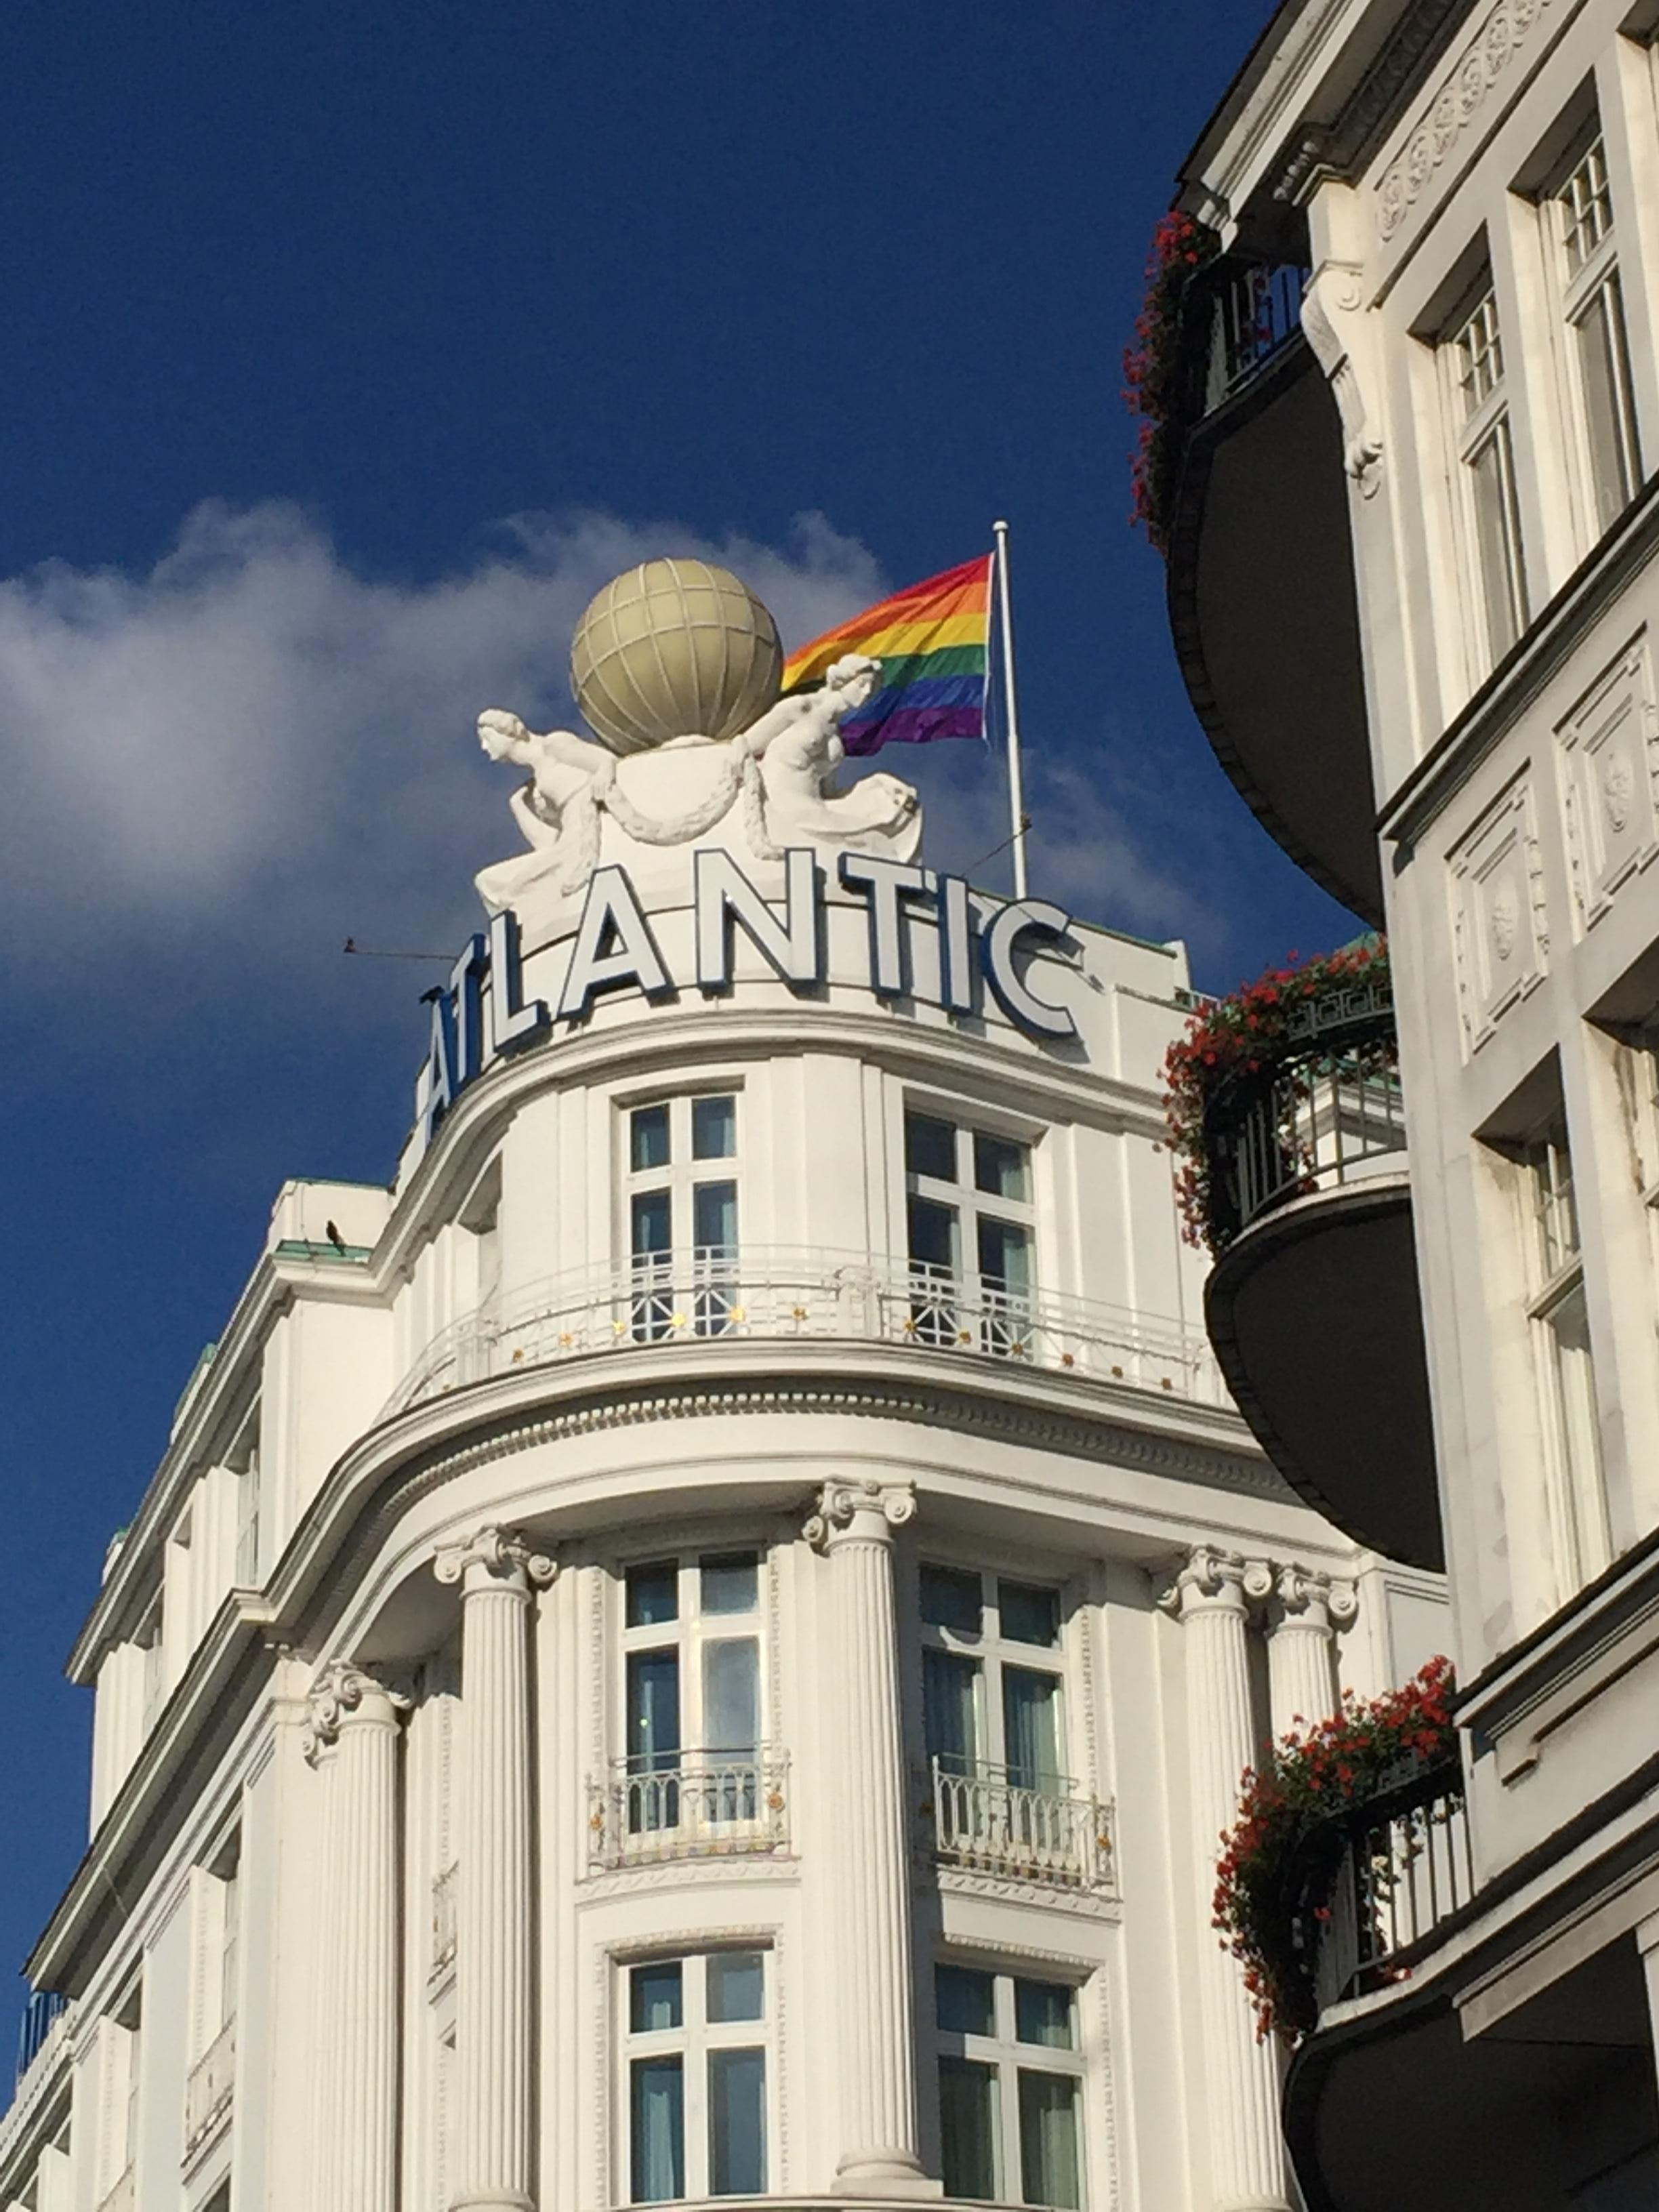 The famous globe symbol of the hotel and a rainbow flag for Pride Week